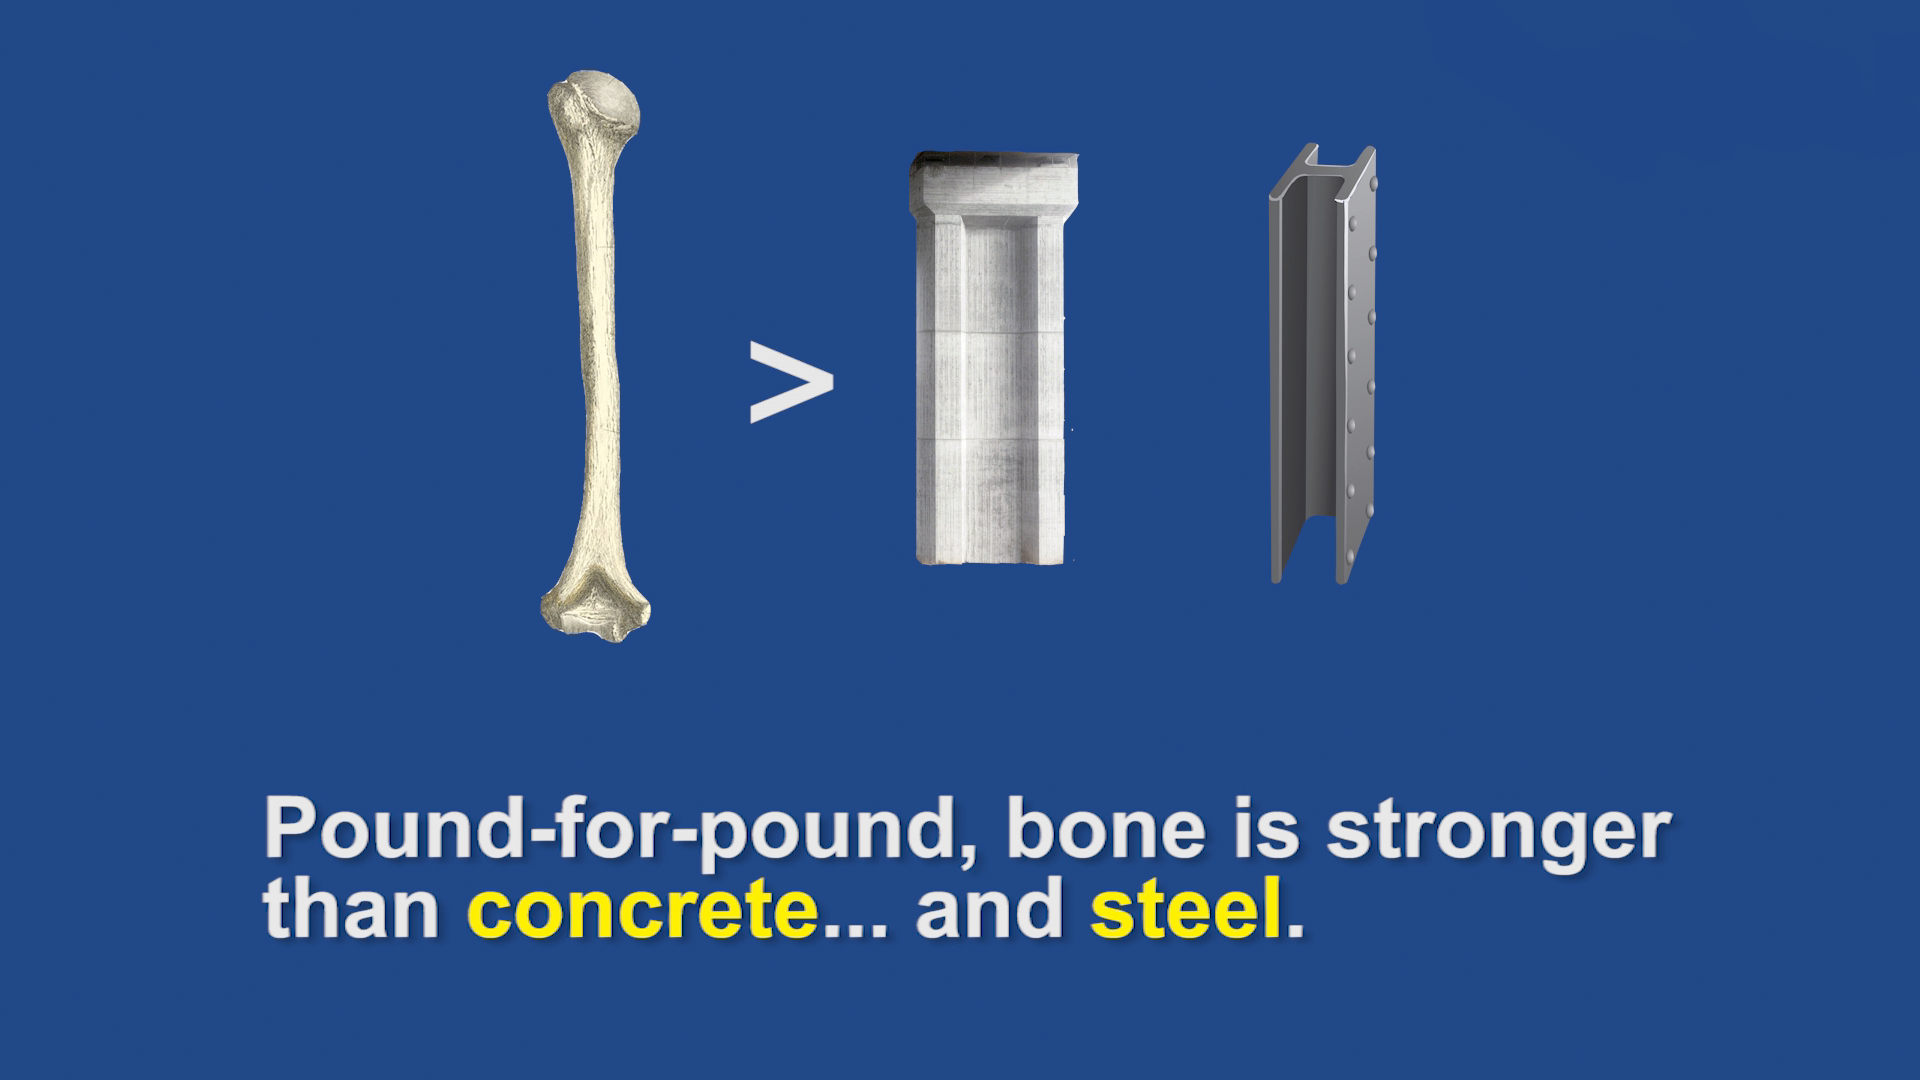 bone is stronger than concrete and steel